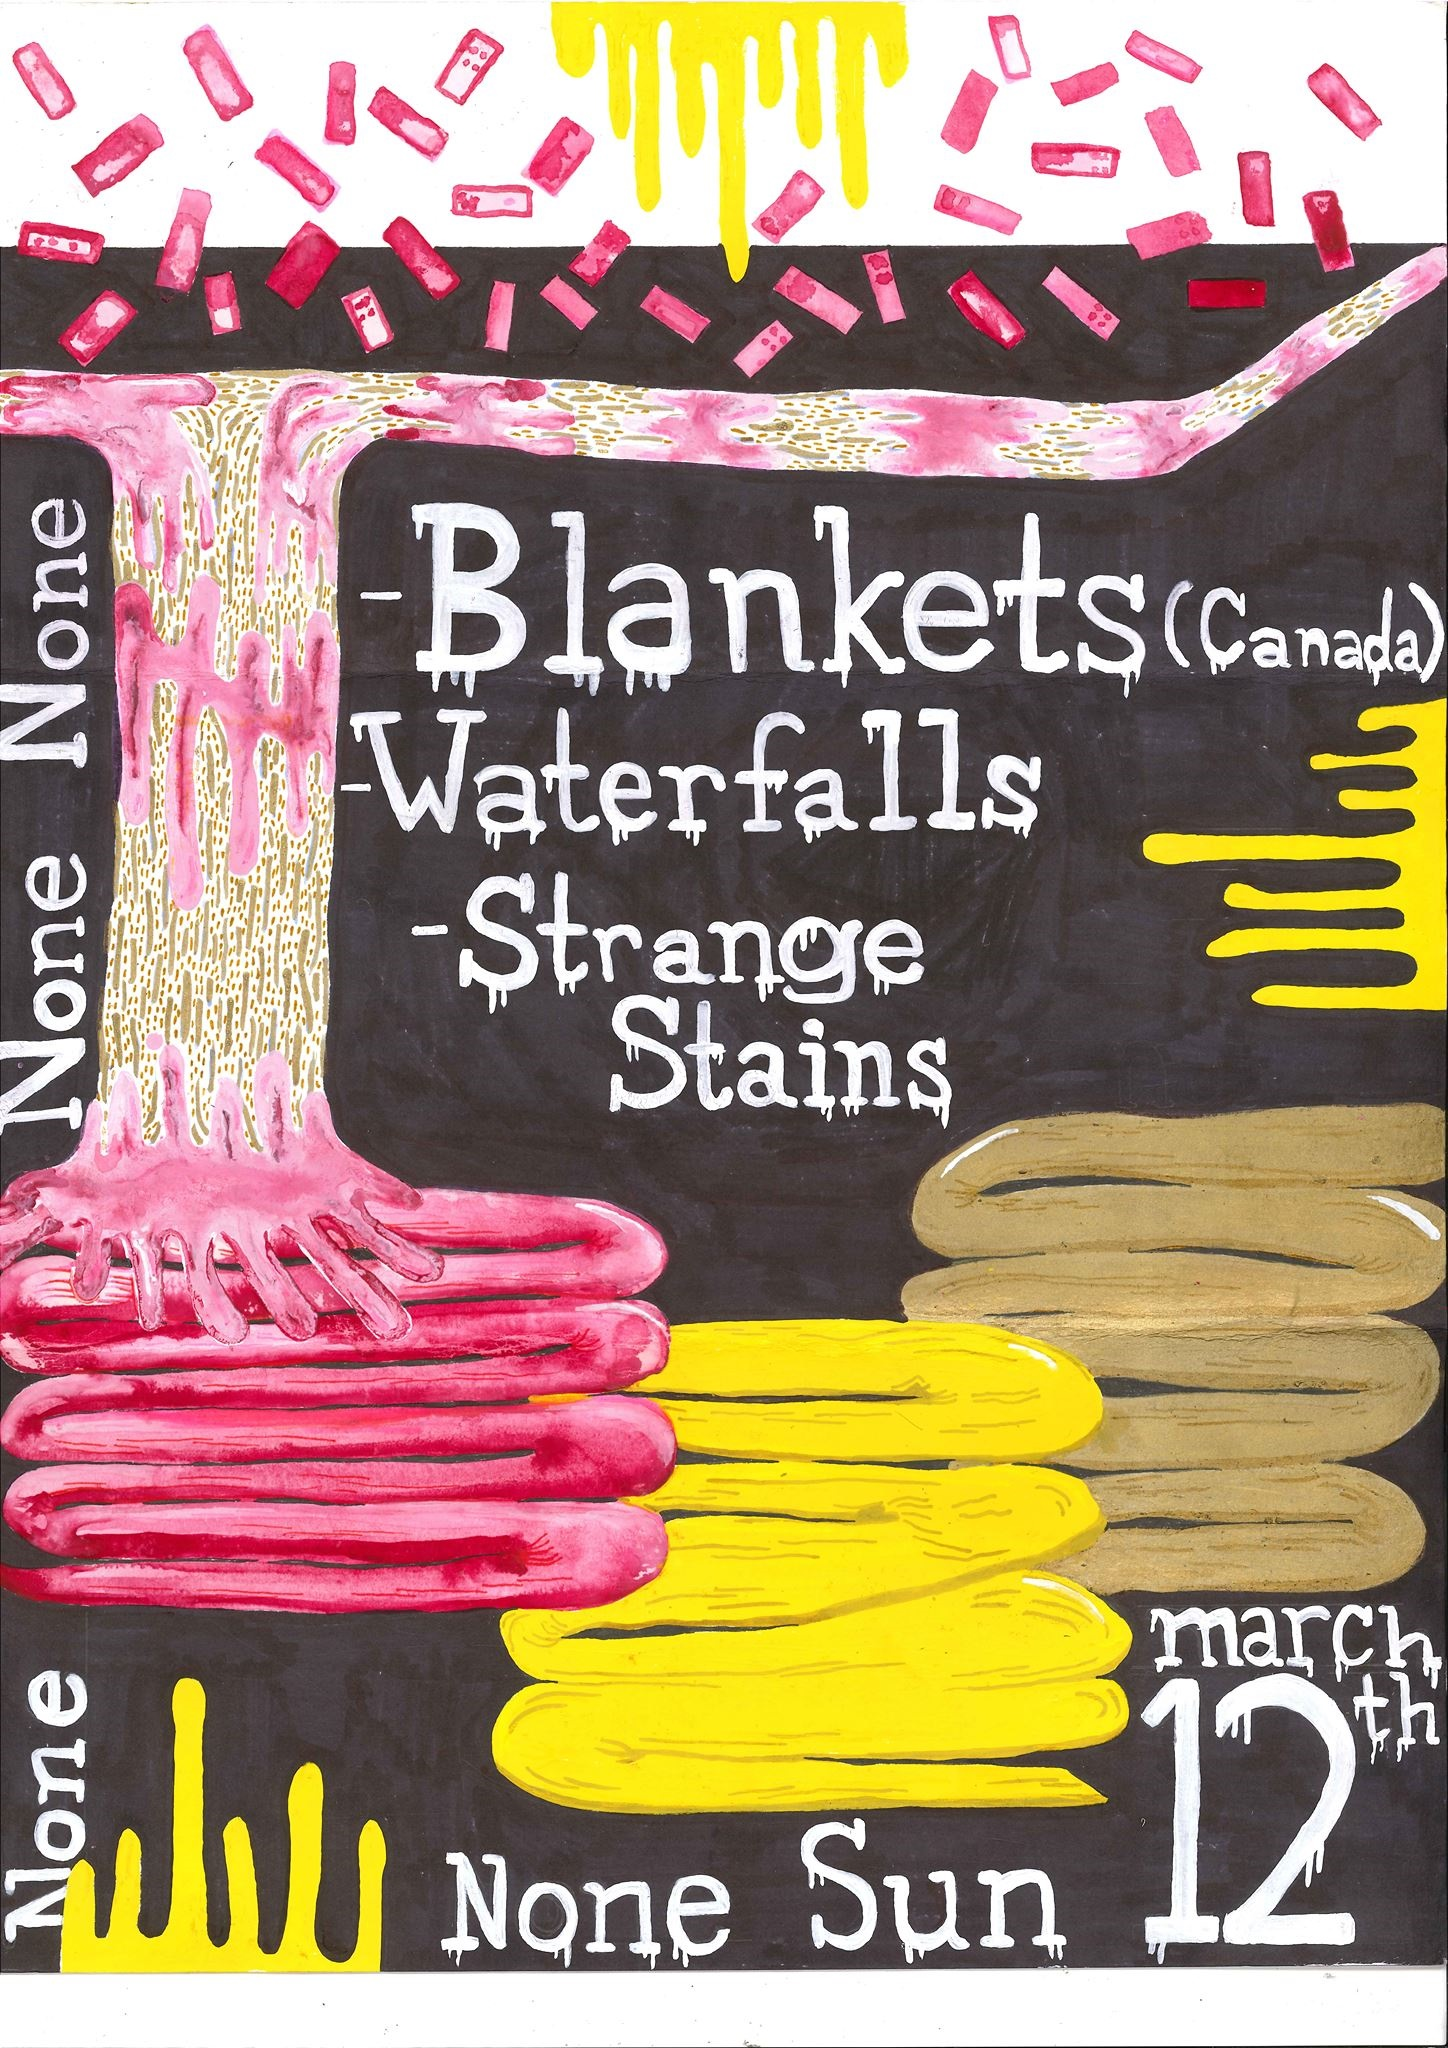 Blankets Canada, Waterfalls, and Strange Stains